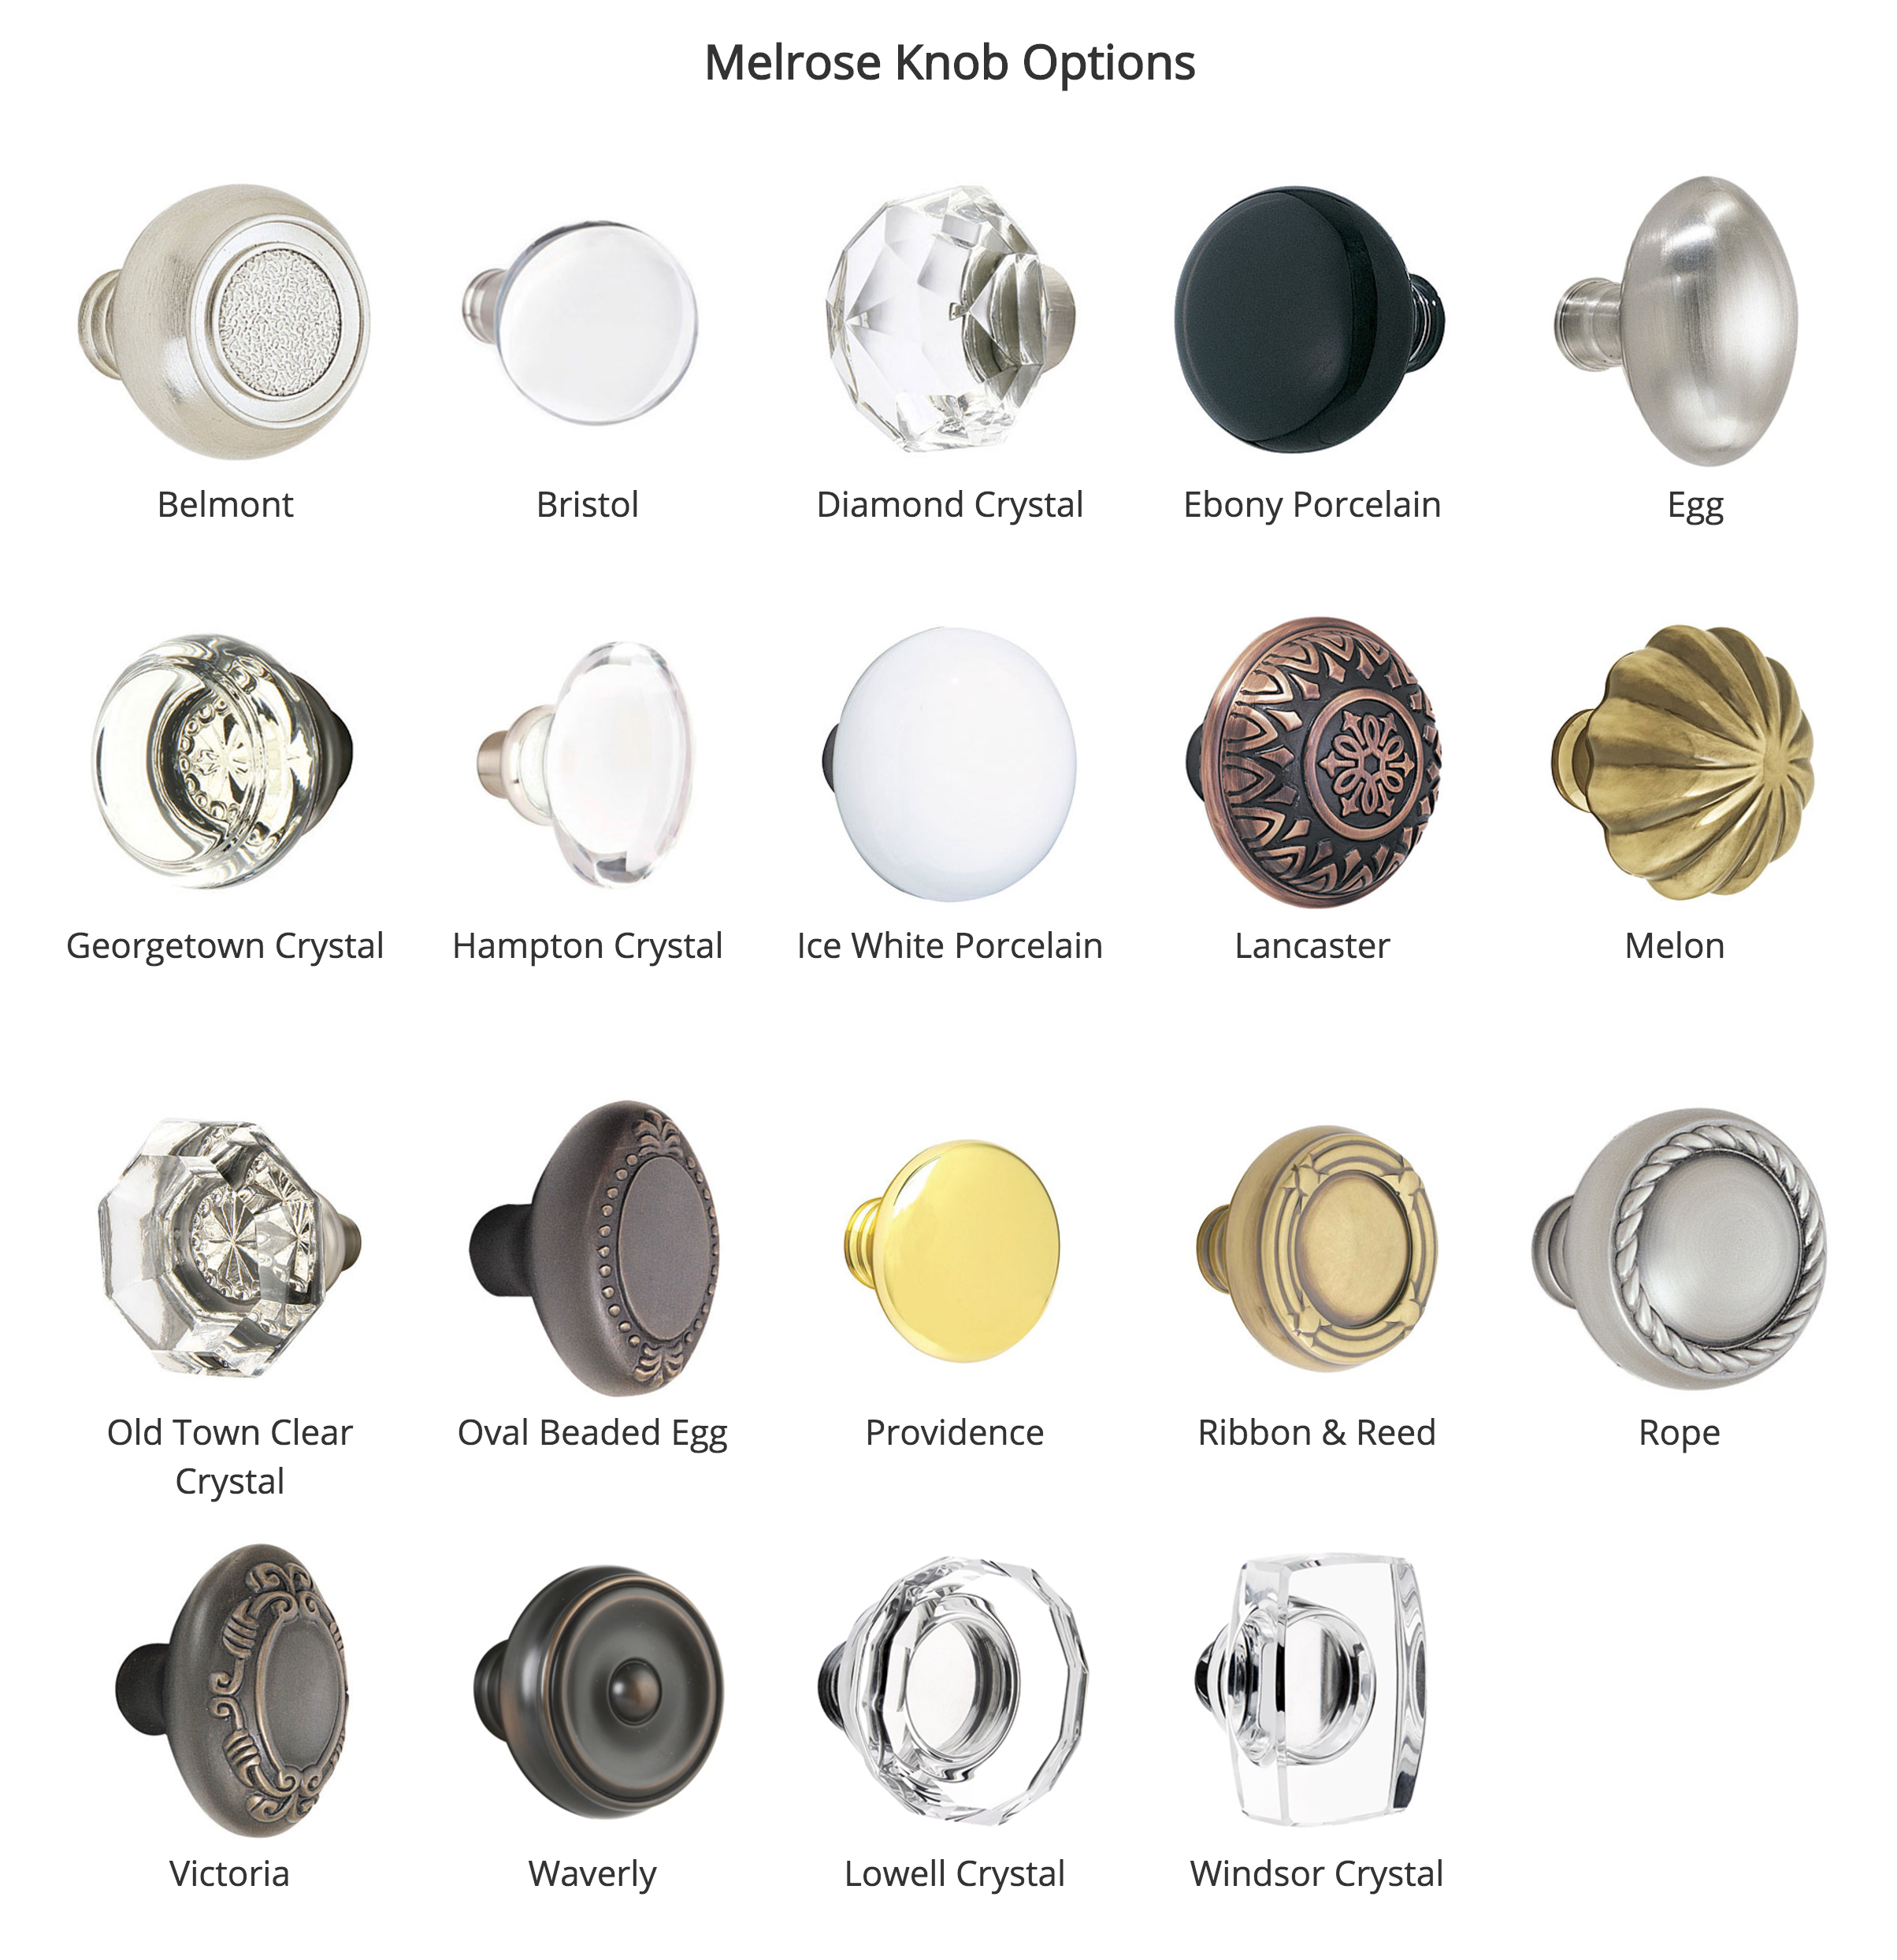 melrose-knob-options-bronze-and-brass-door-hardware-by-emtek-at-360-yardware.png